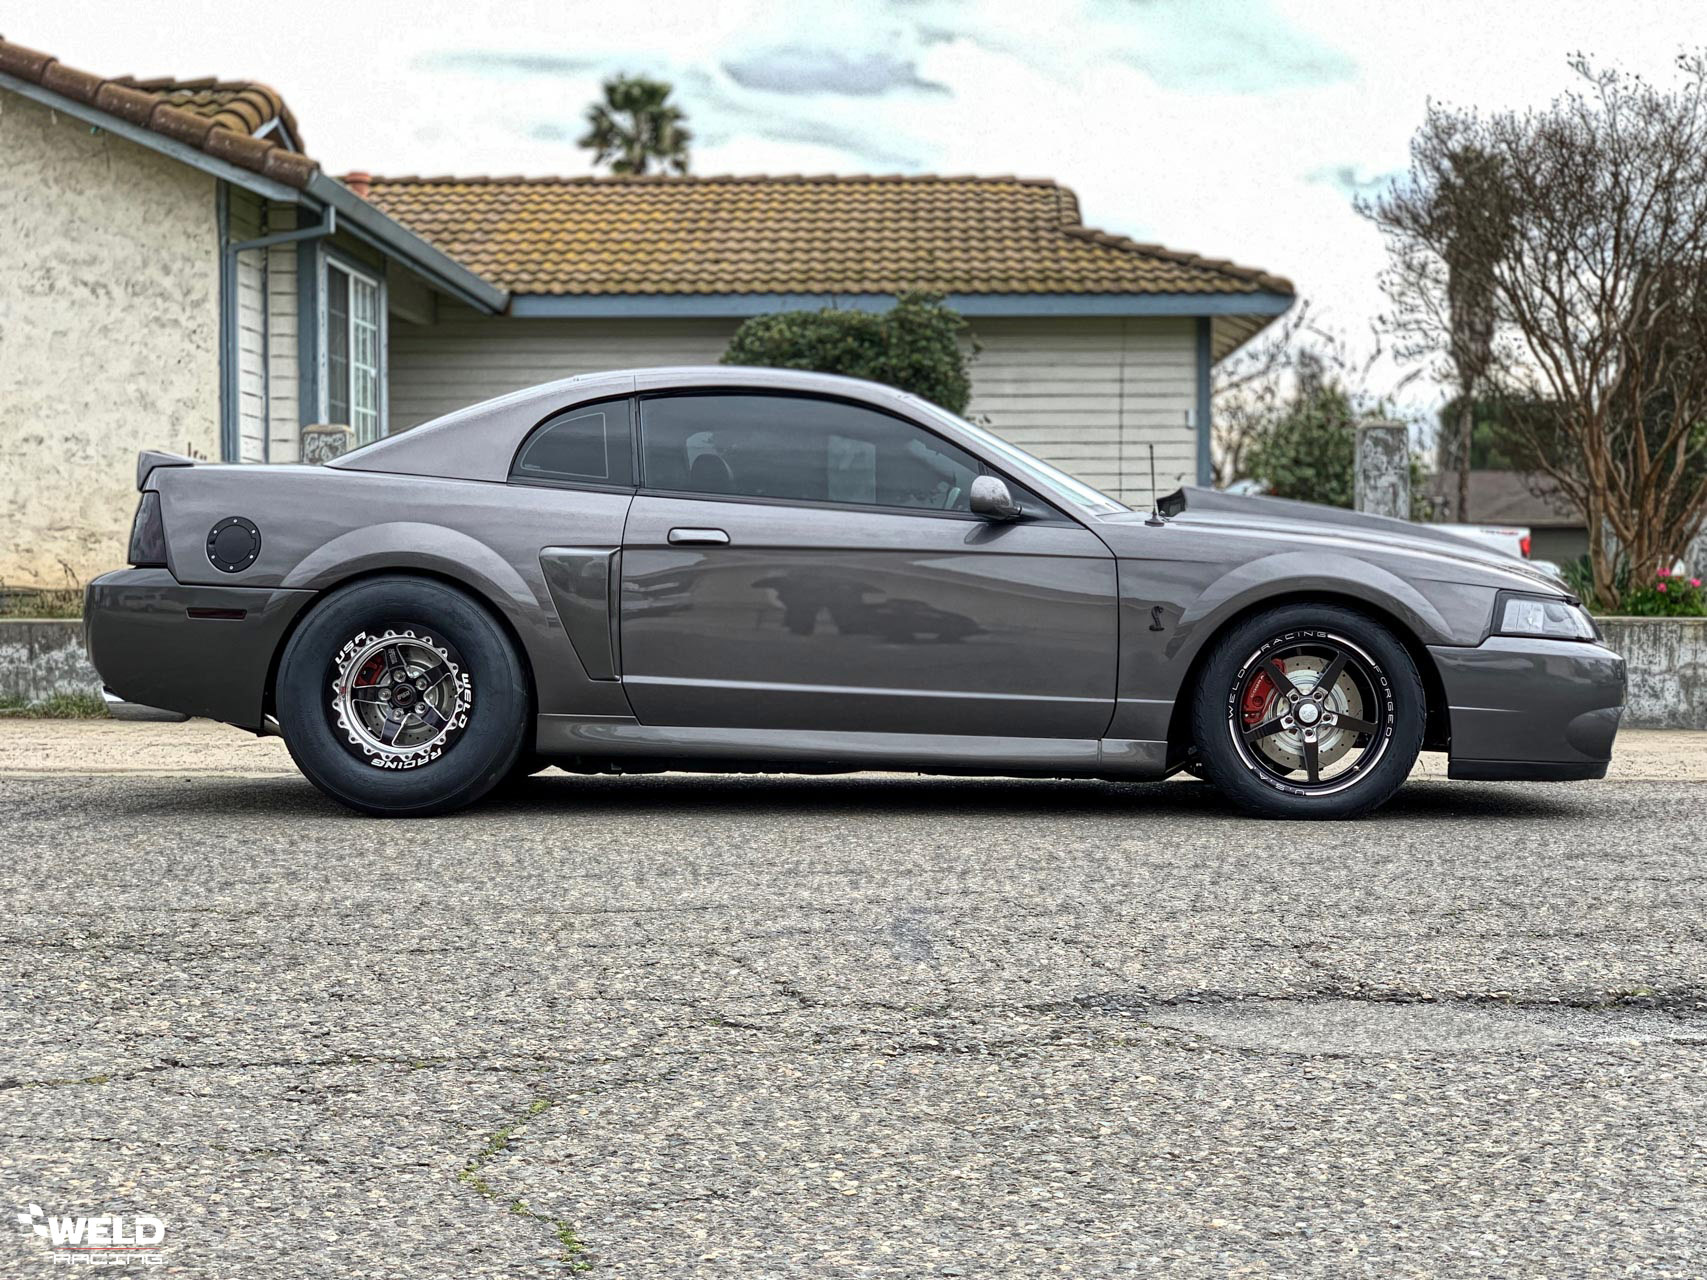 hight resolution of matte black ford mustang 2003 cobra terminator weld s71 wheels